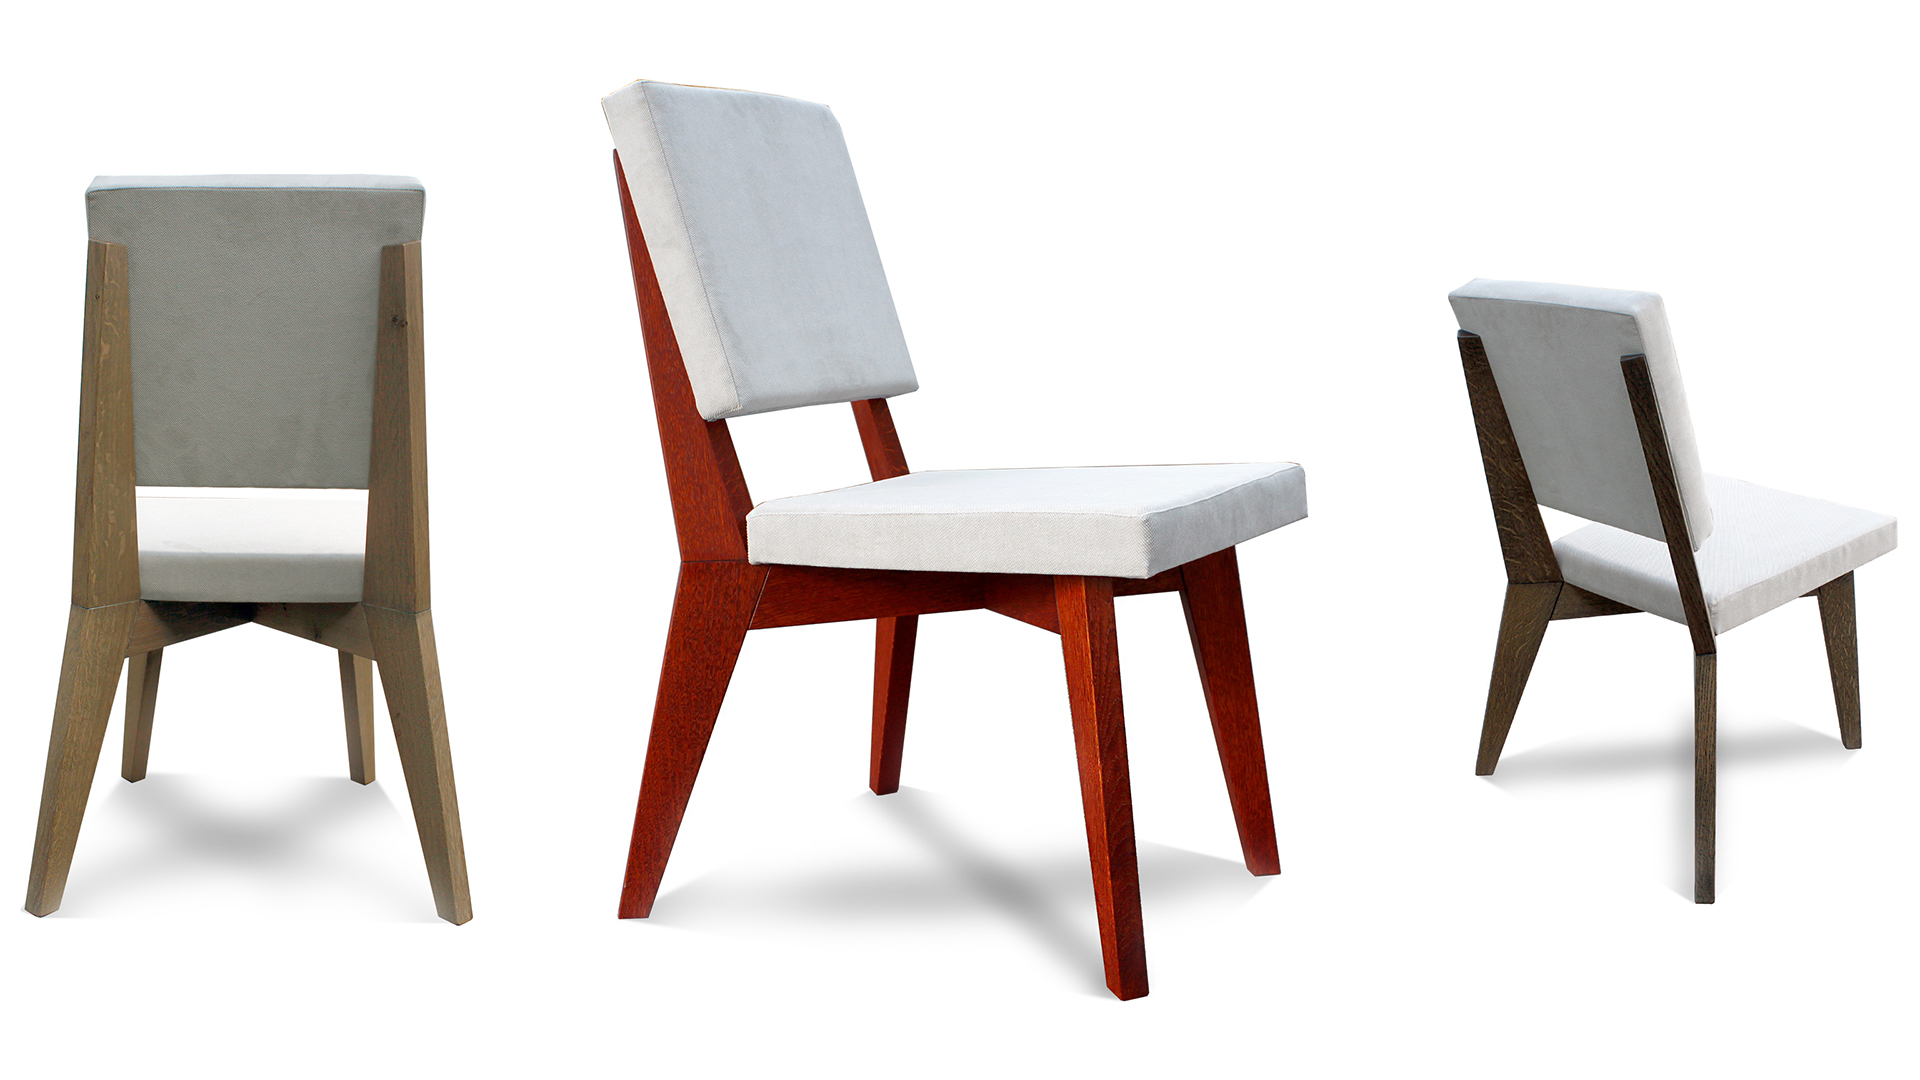 x chair 3 furniture like design pavol ellinger